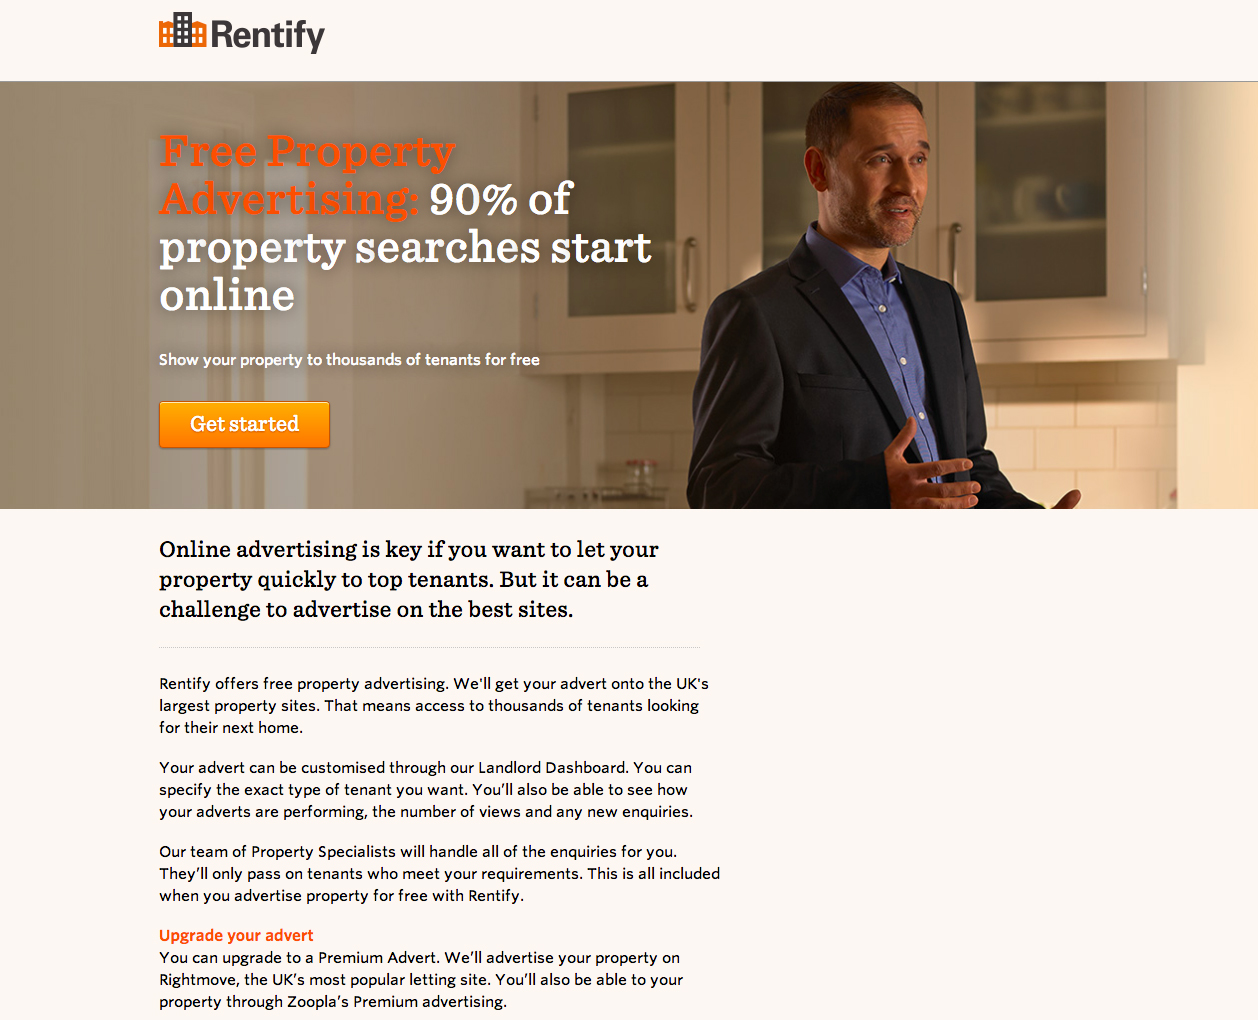 Rentify landing page example 2